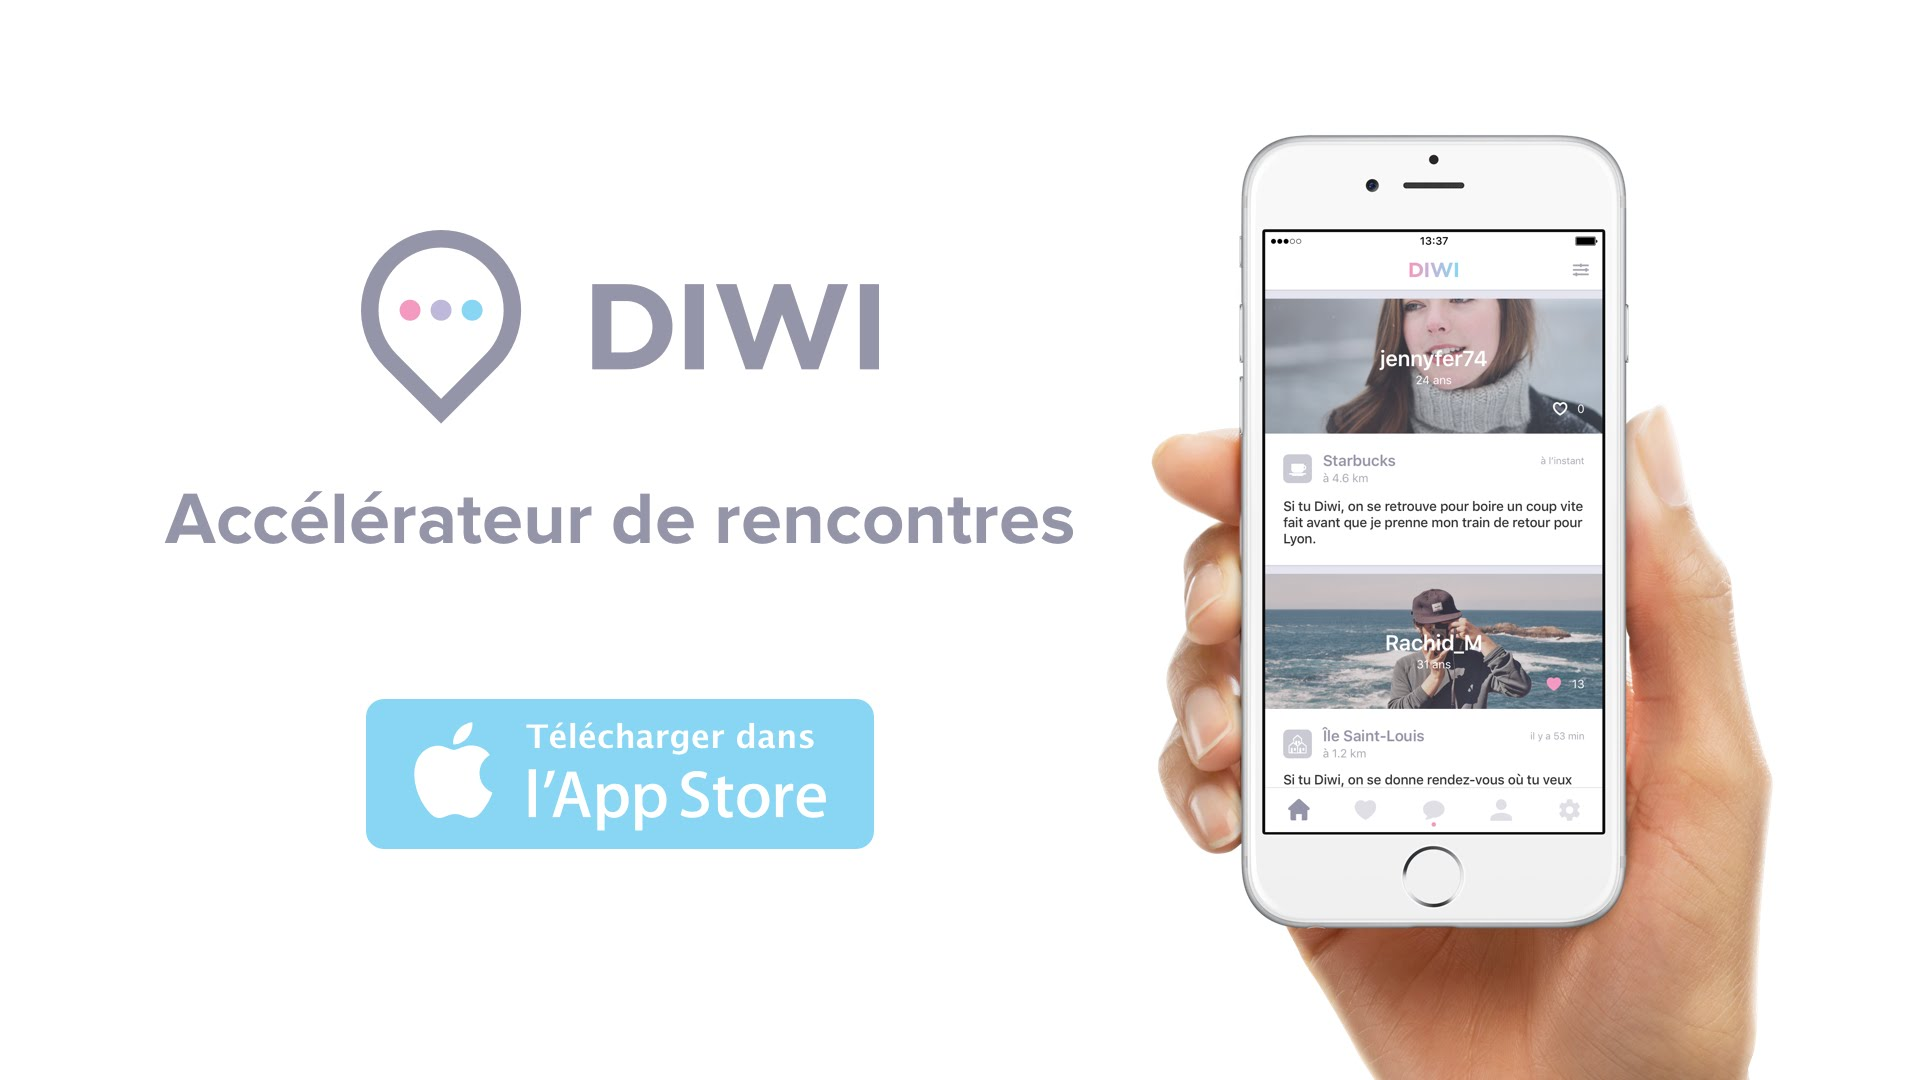 Nouvelle application de rencontre